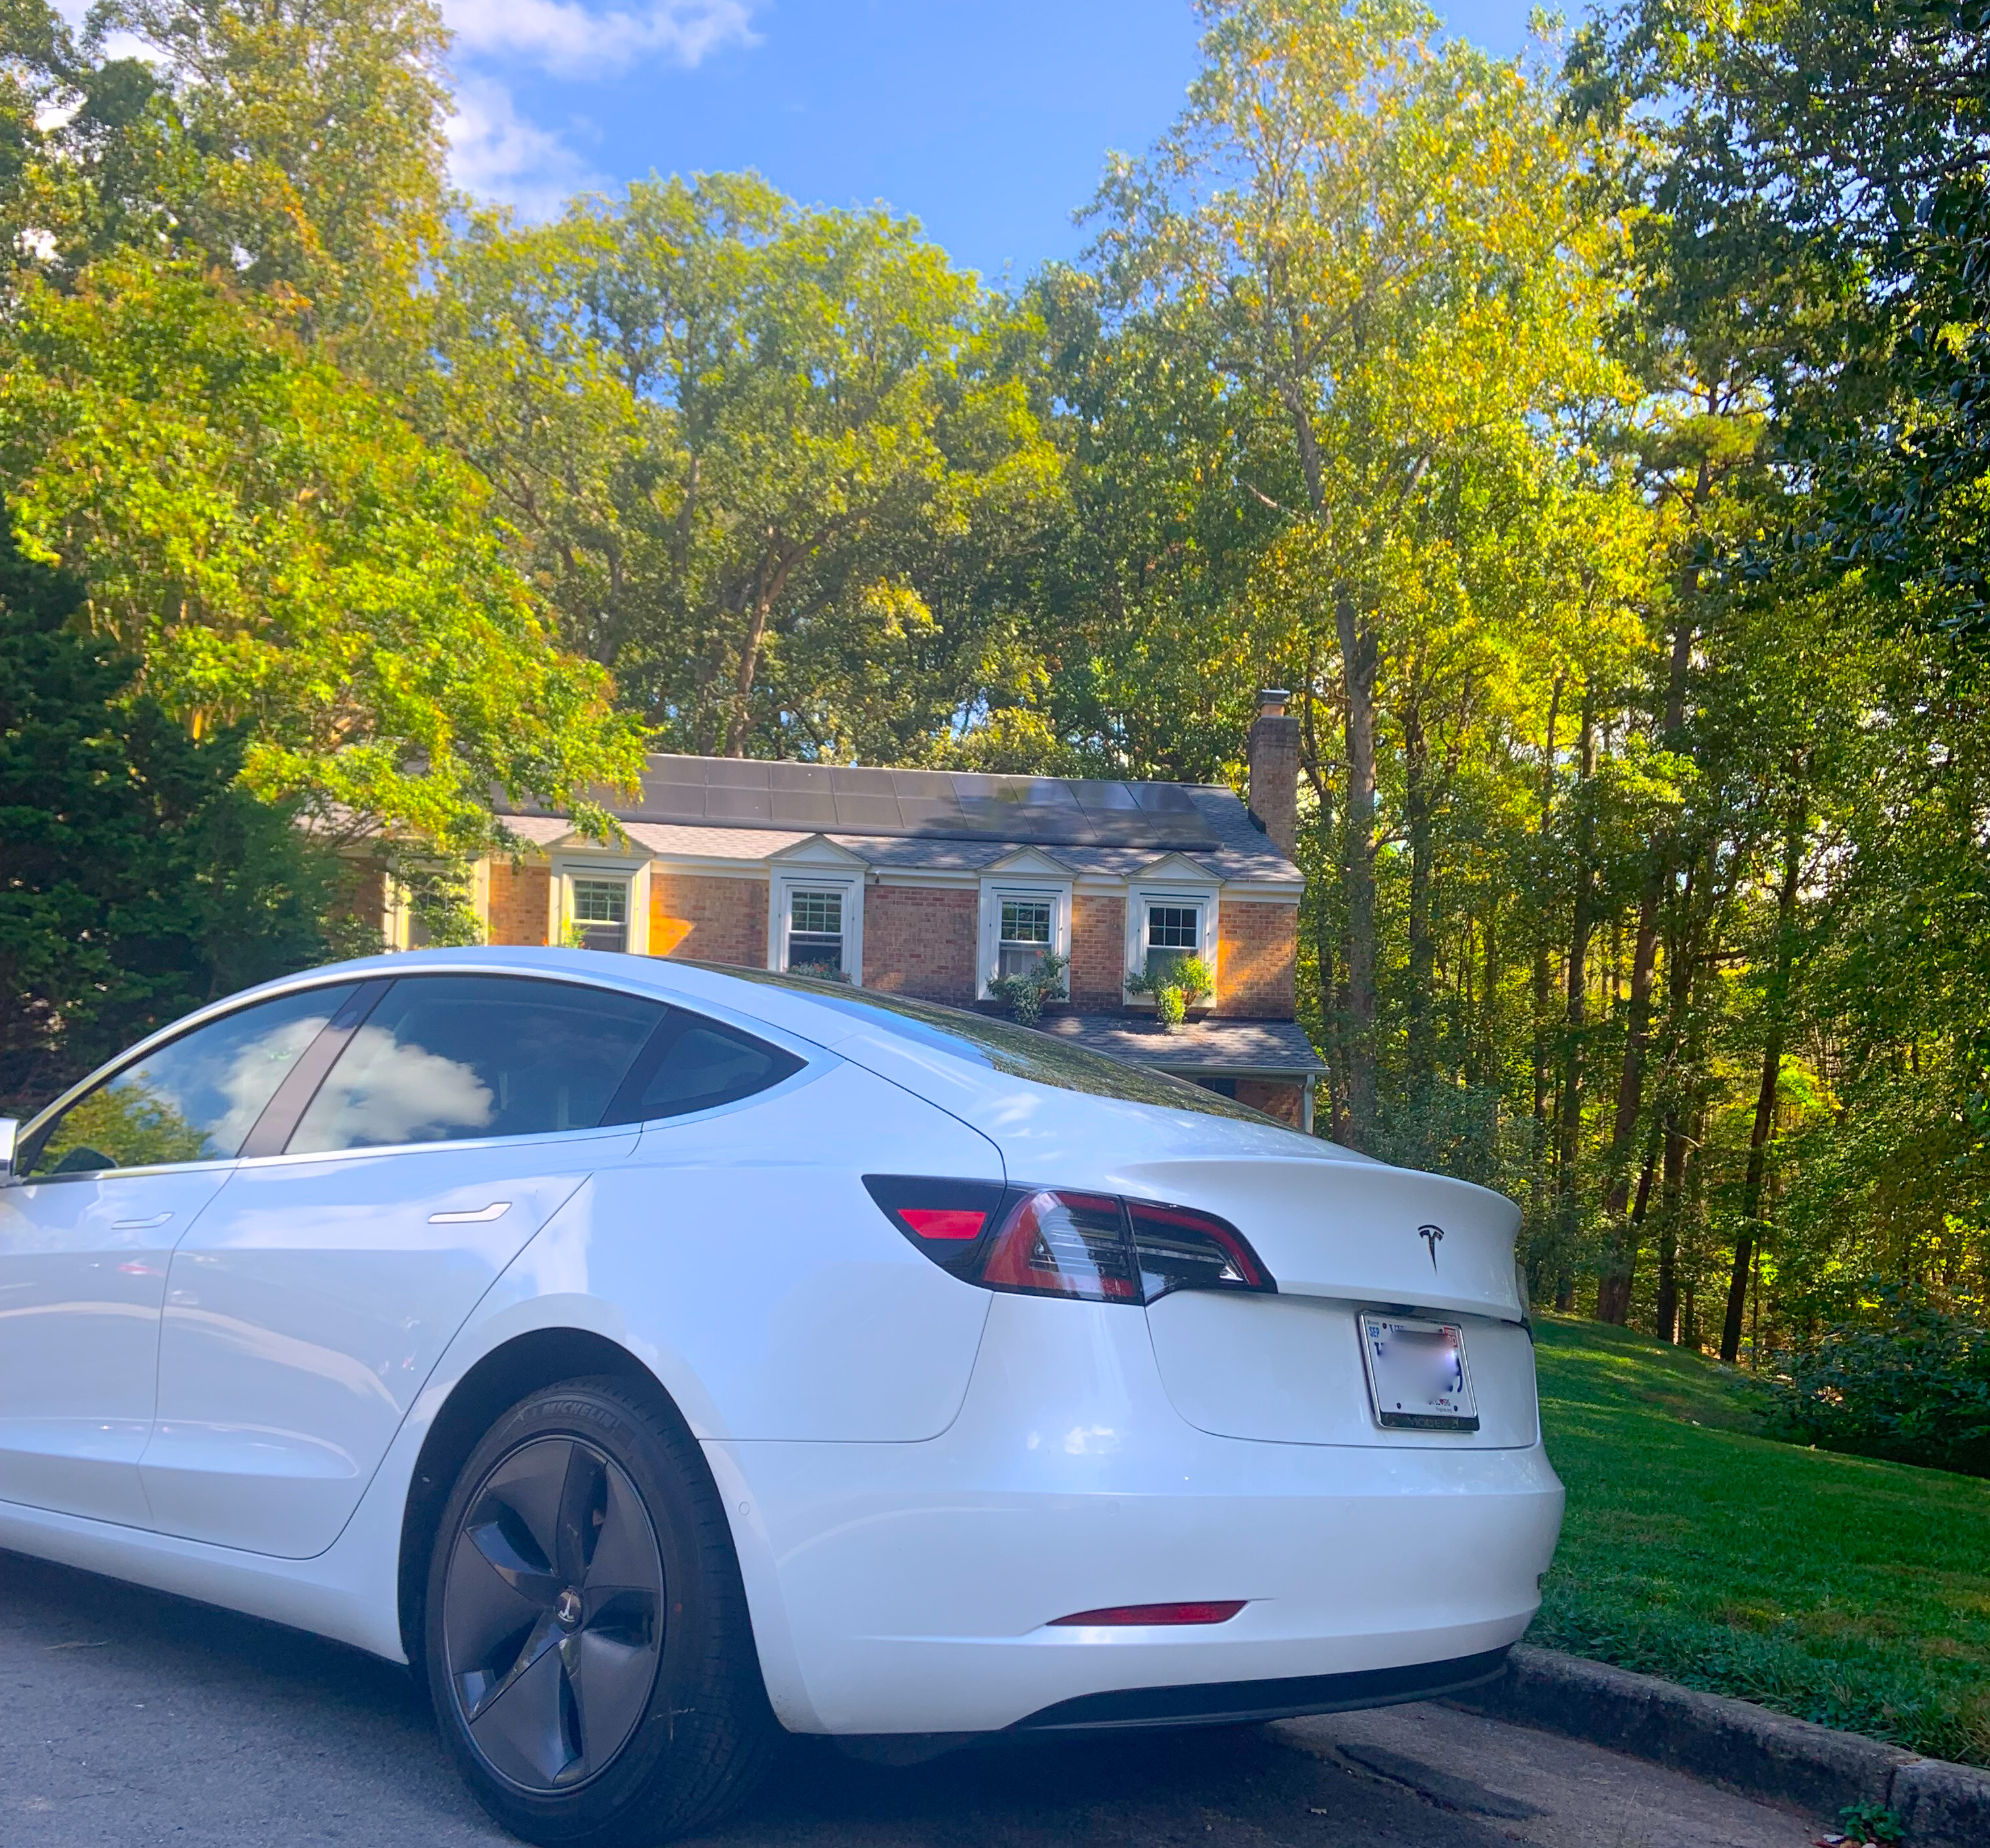 Save More Money and Get Zero Emissions with your EV: Go Solar!